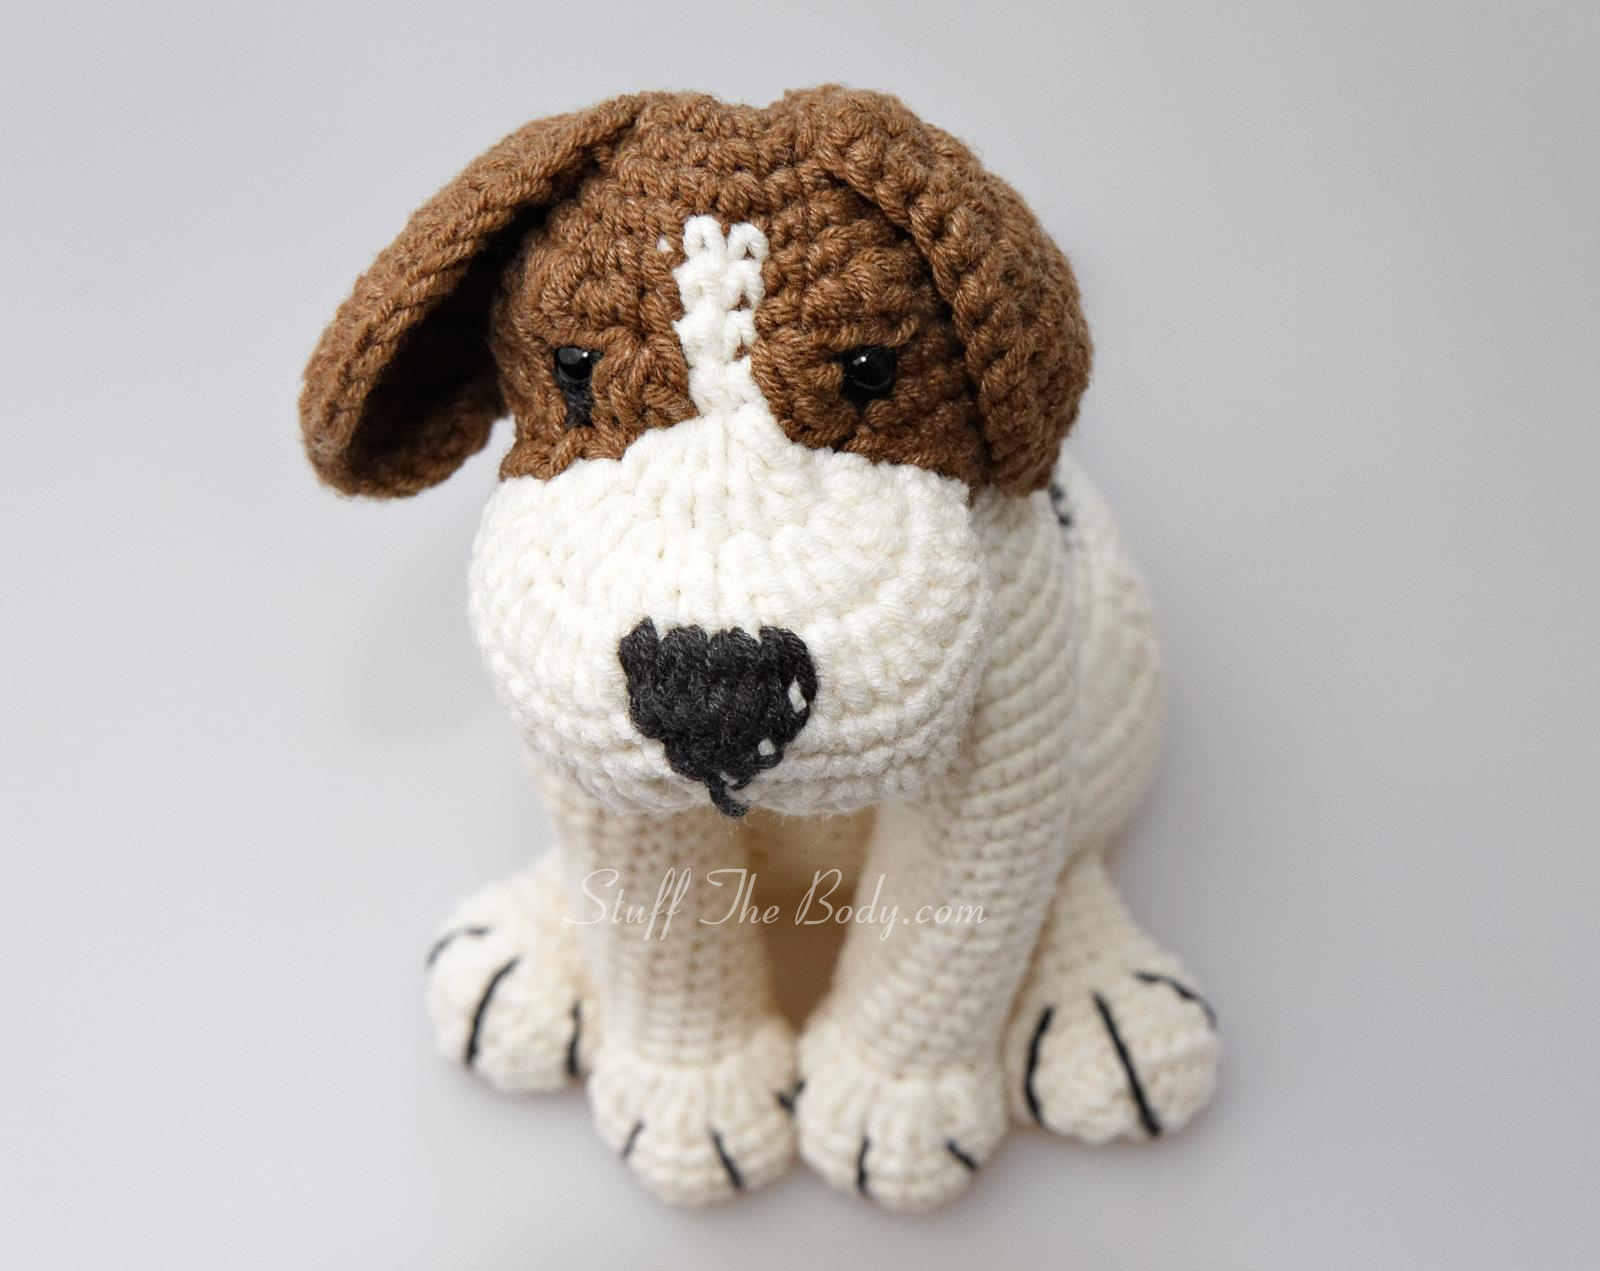 Amigurumi Pug Dog Pattern : Stuff The Body Advanced Amigurumi Patterns